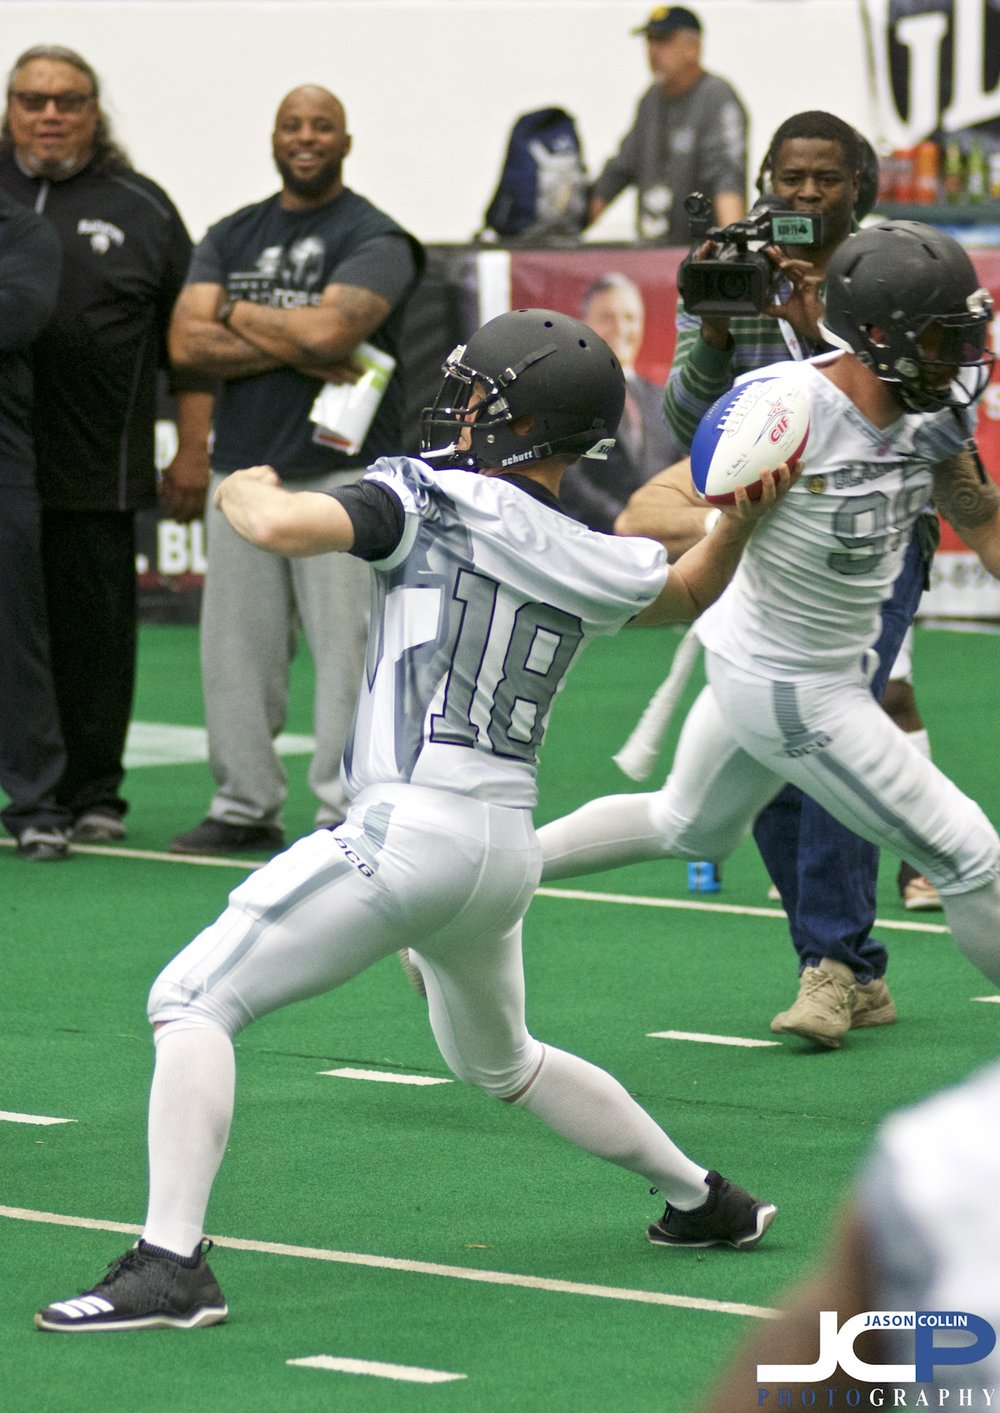 Albuquerque, New Mexico Mayor Tim Keller warms up to play quarterback for the Duke City Gladiators